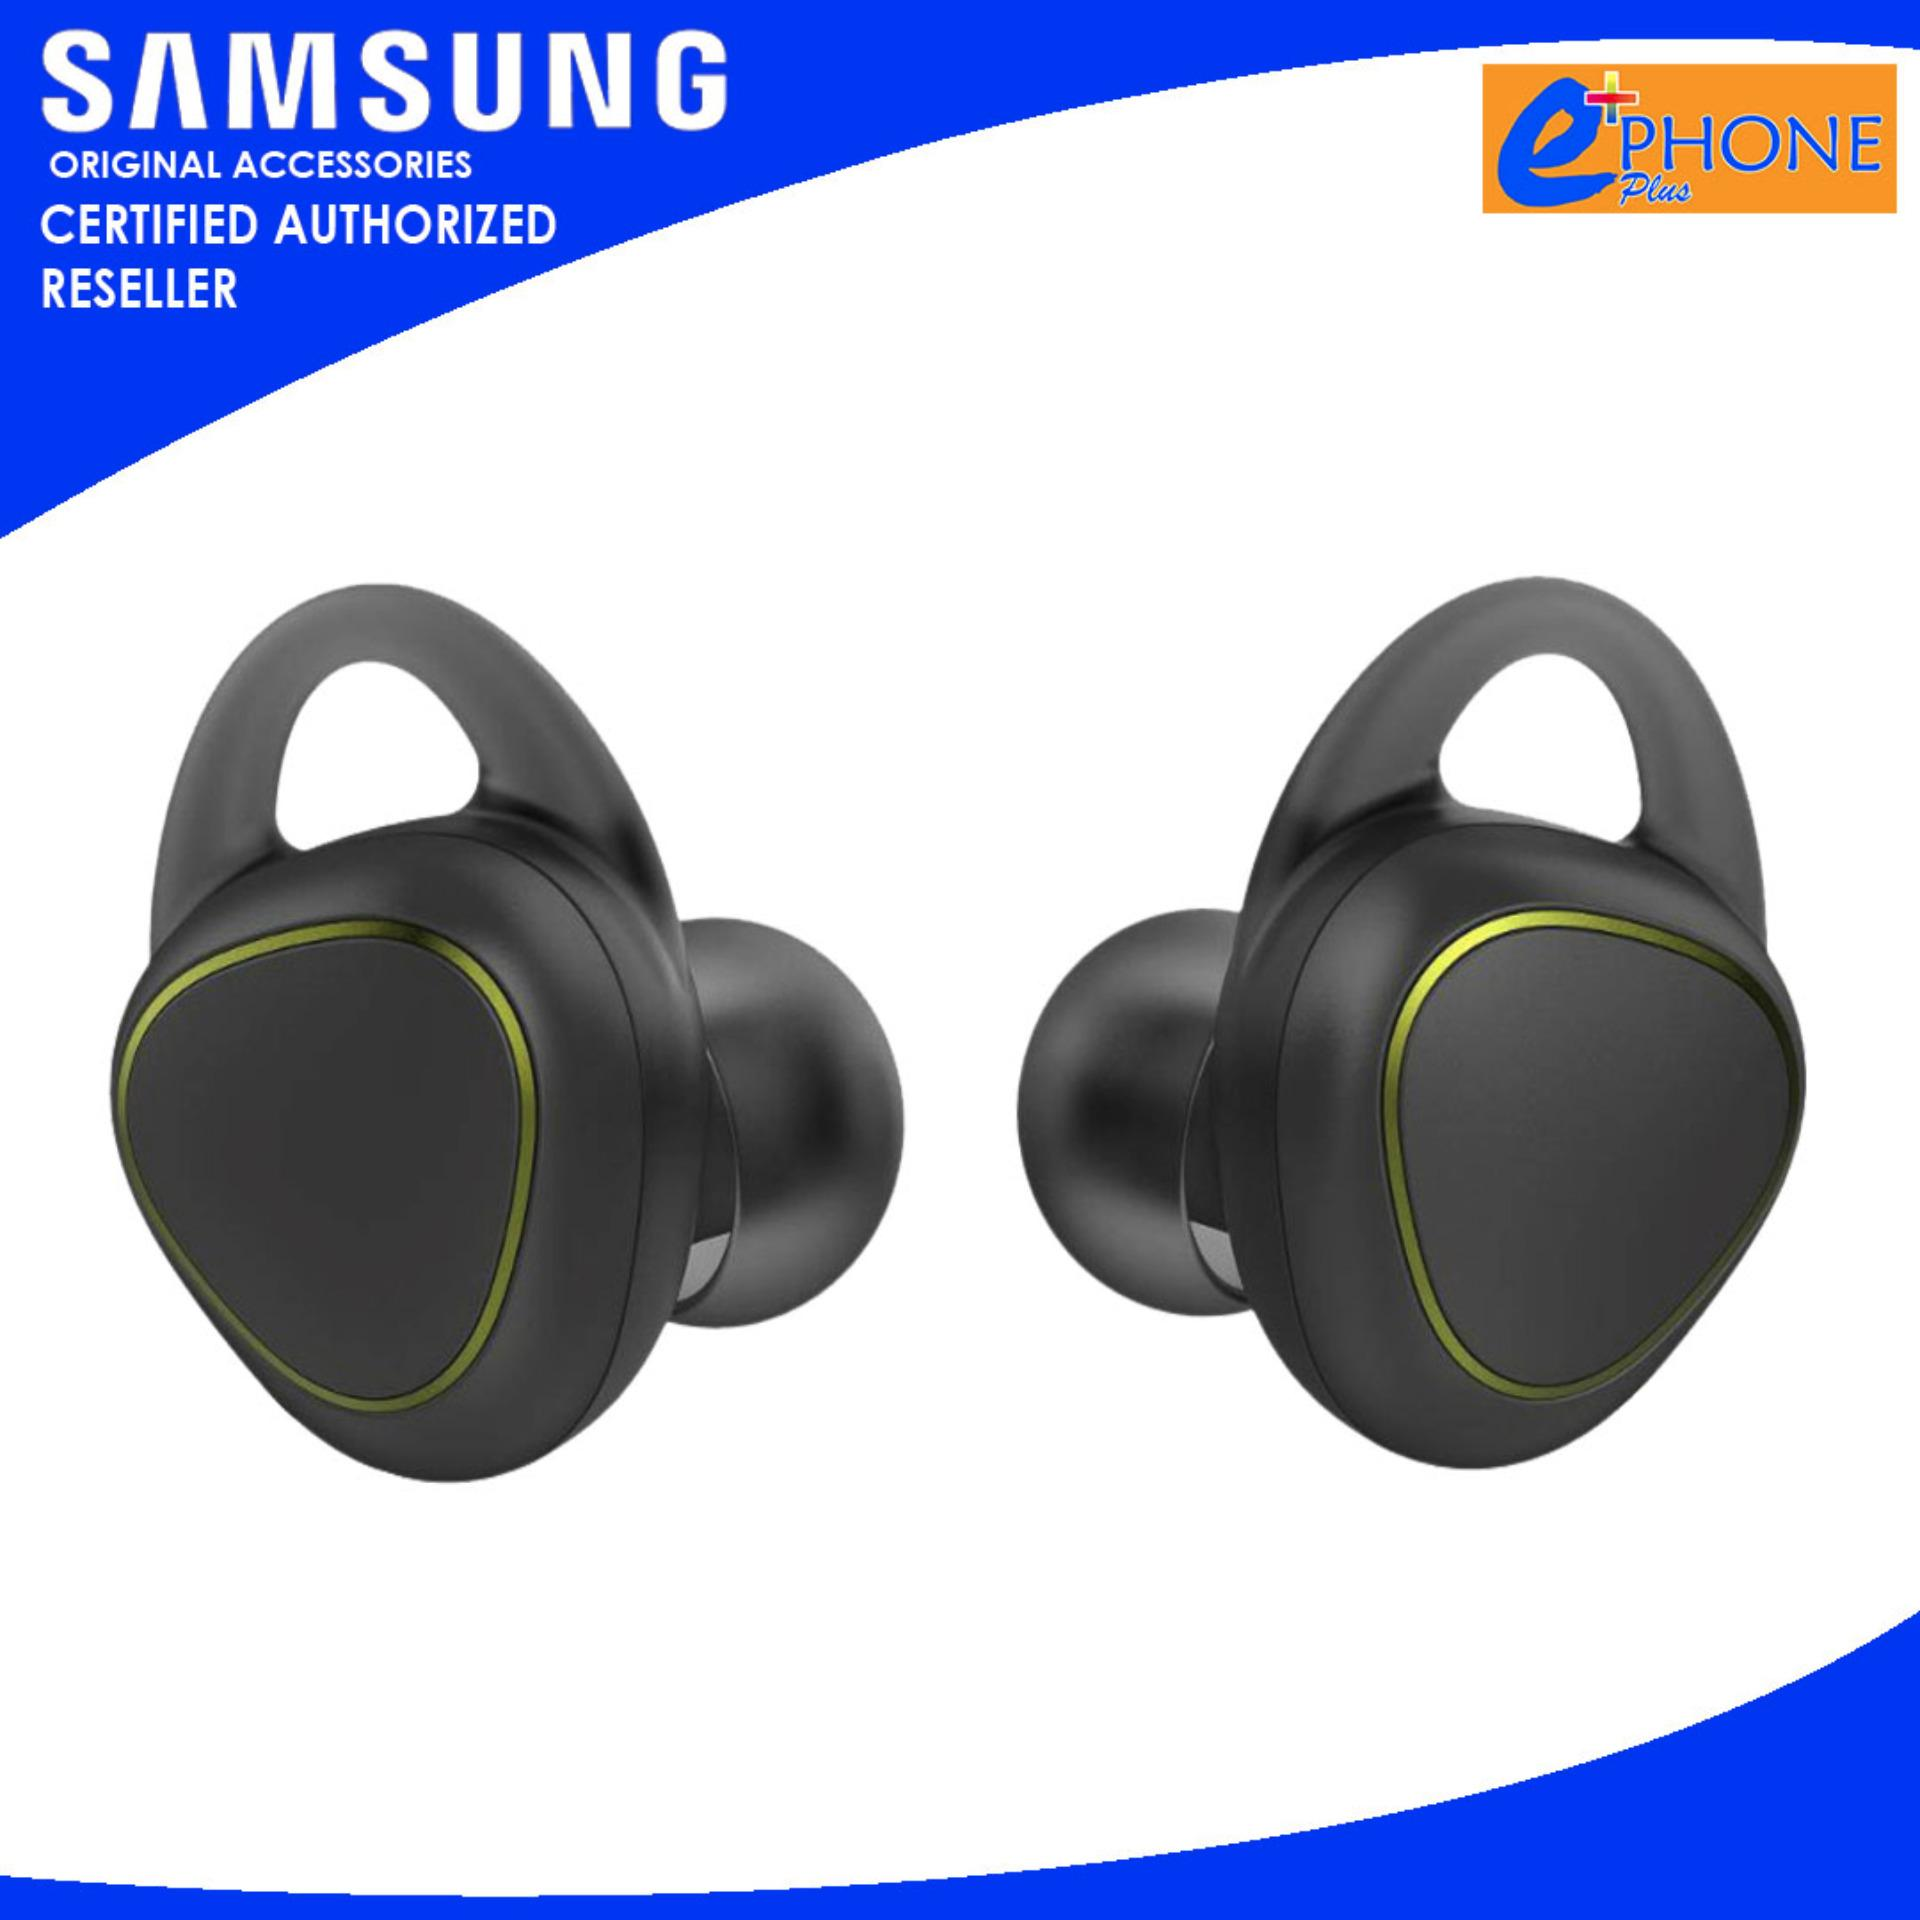 Foroffice Samsung Wireless Earphones Price Philippines